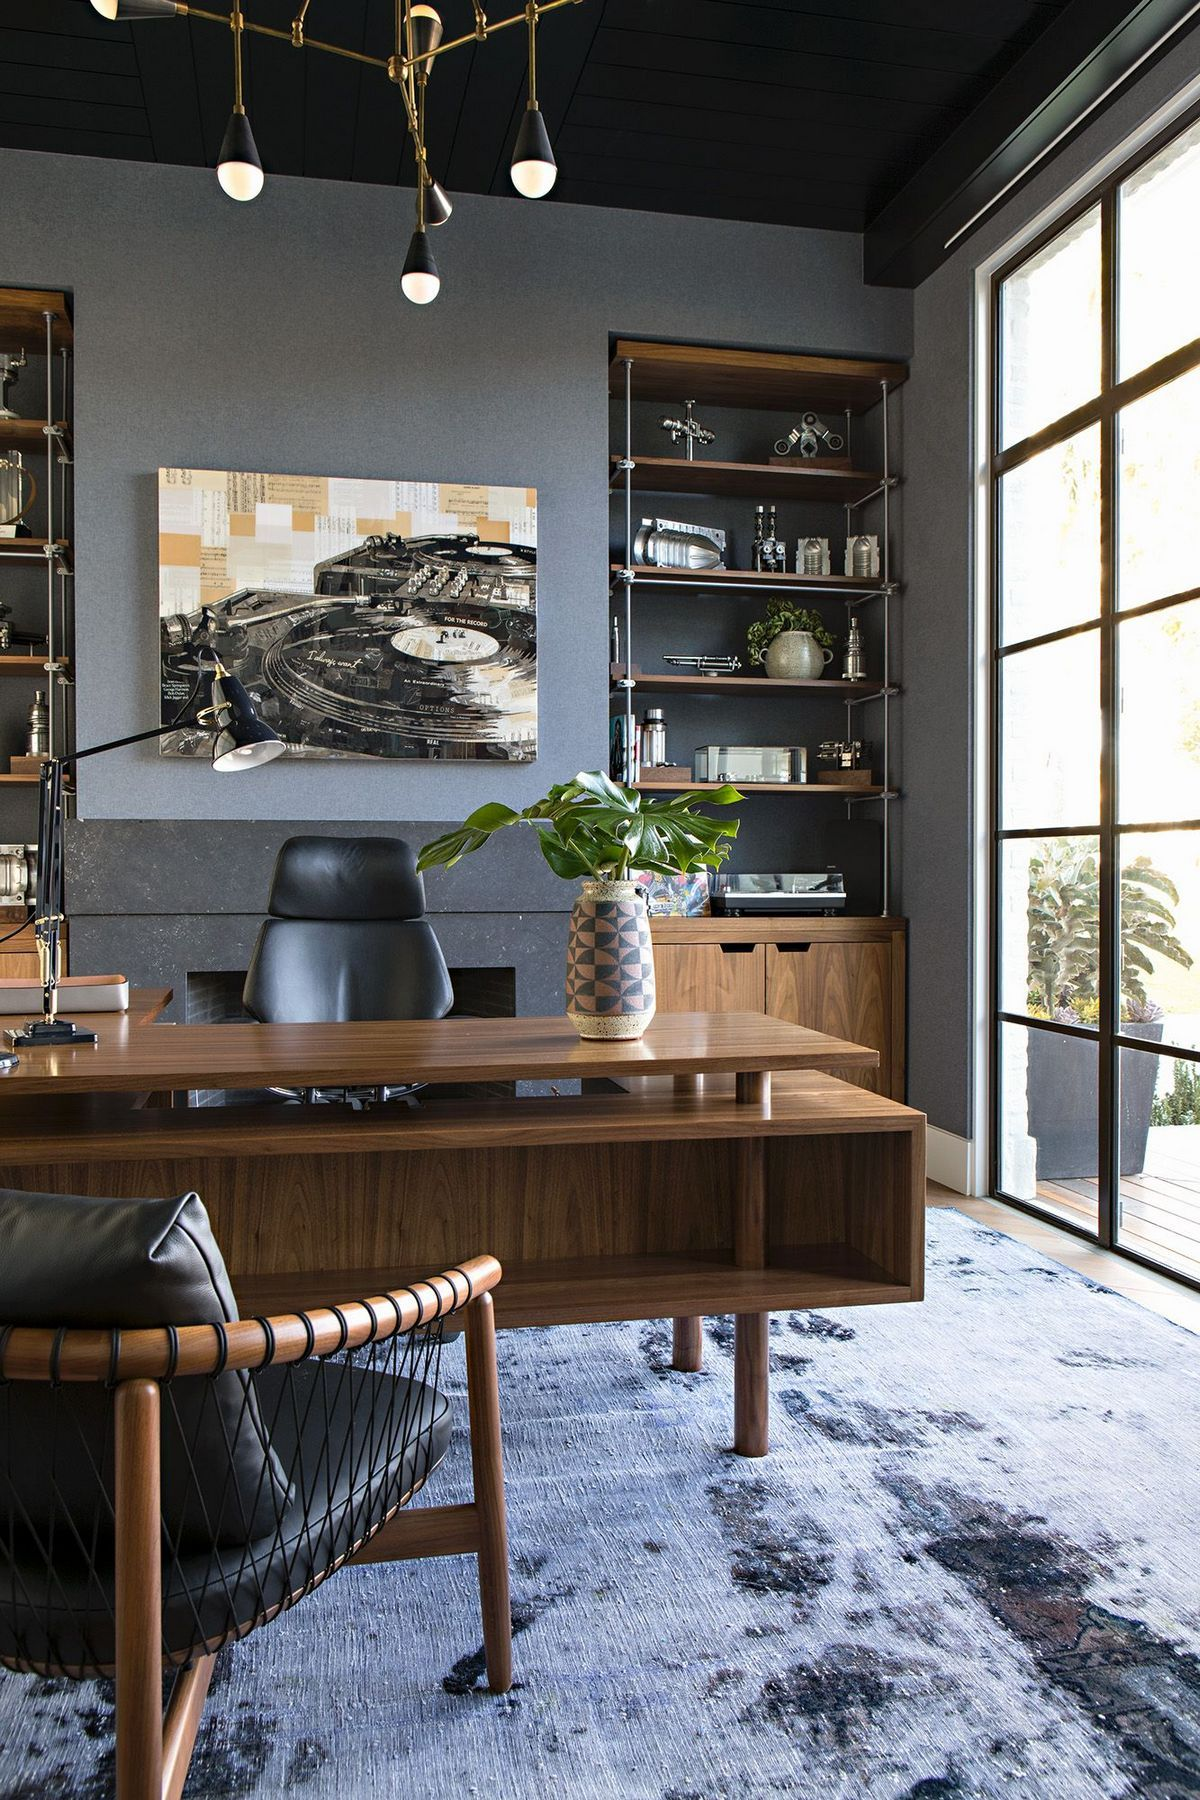 Home Office Space Decor Ideas 90 Inspira Spaces In 2020 Cozy